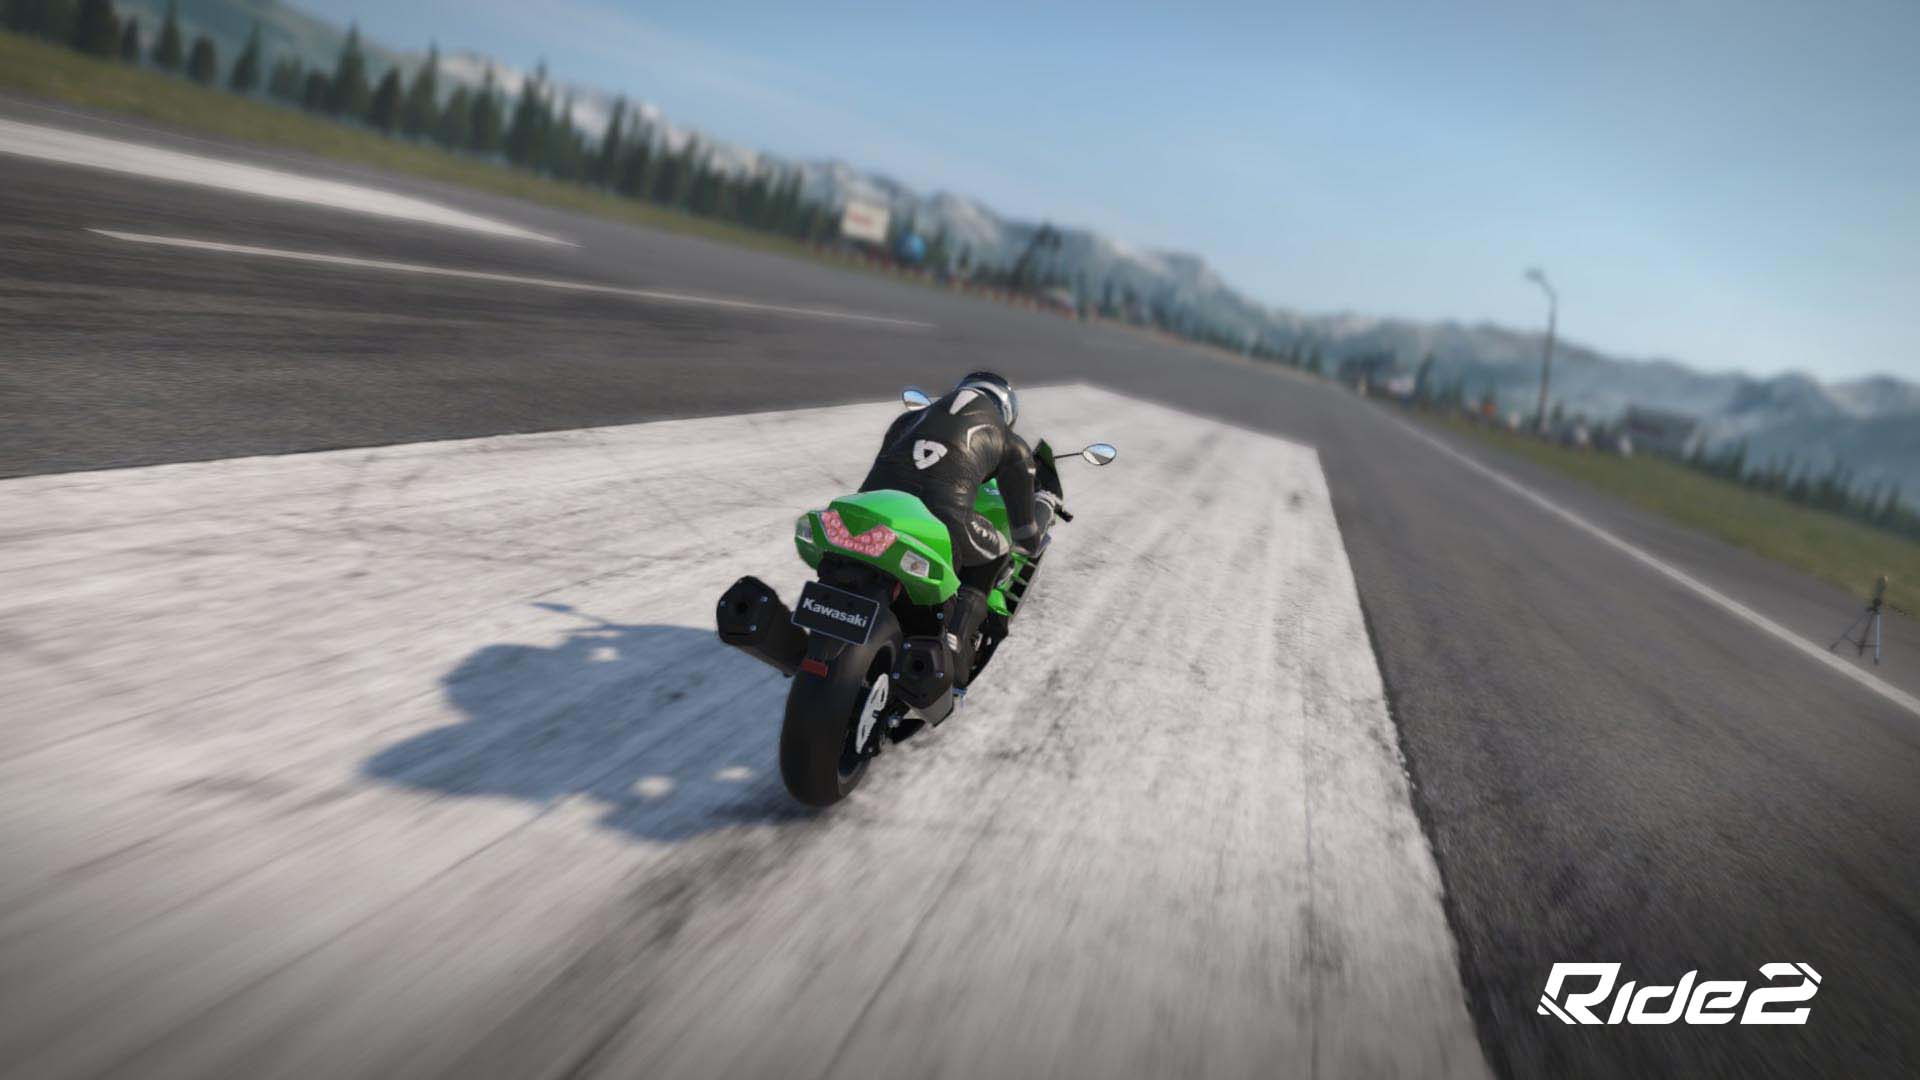 Ride 2 Kawasaki And Ducati Bonus Pack On Steam Engine Covers Diagram Free Furthermore Motorcycle